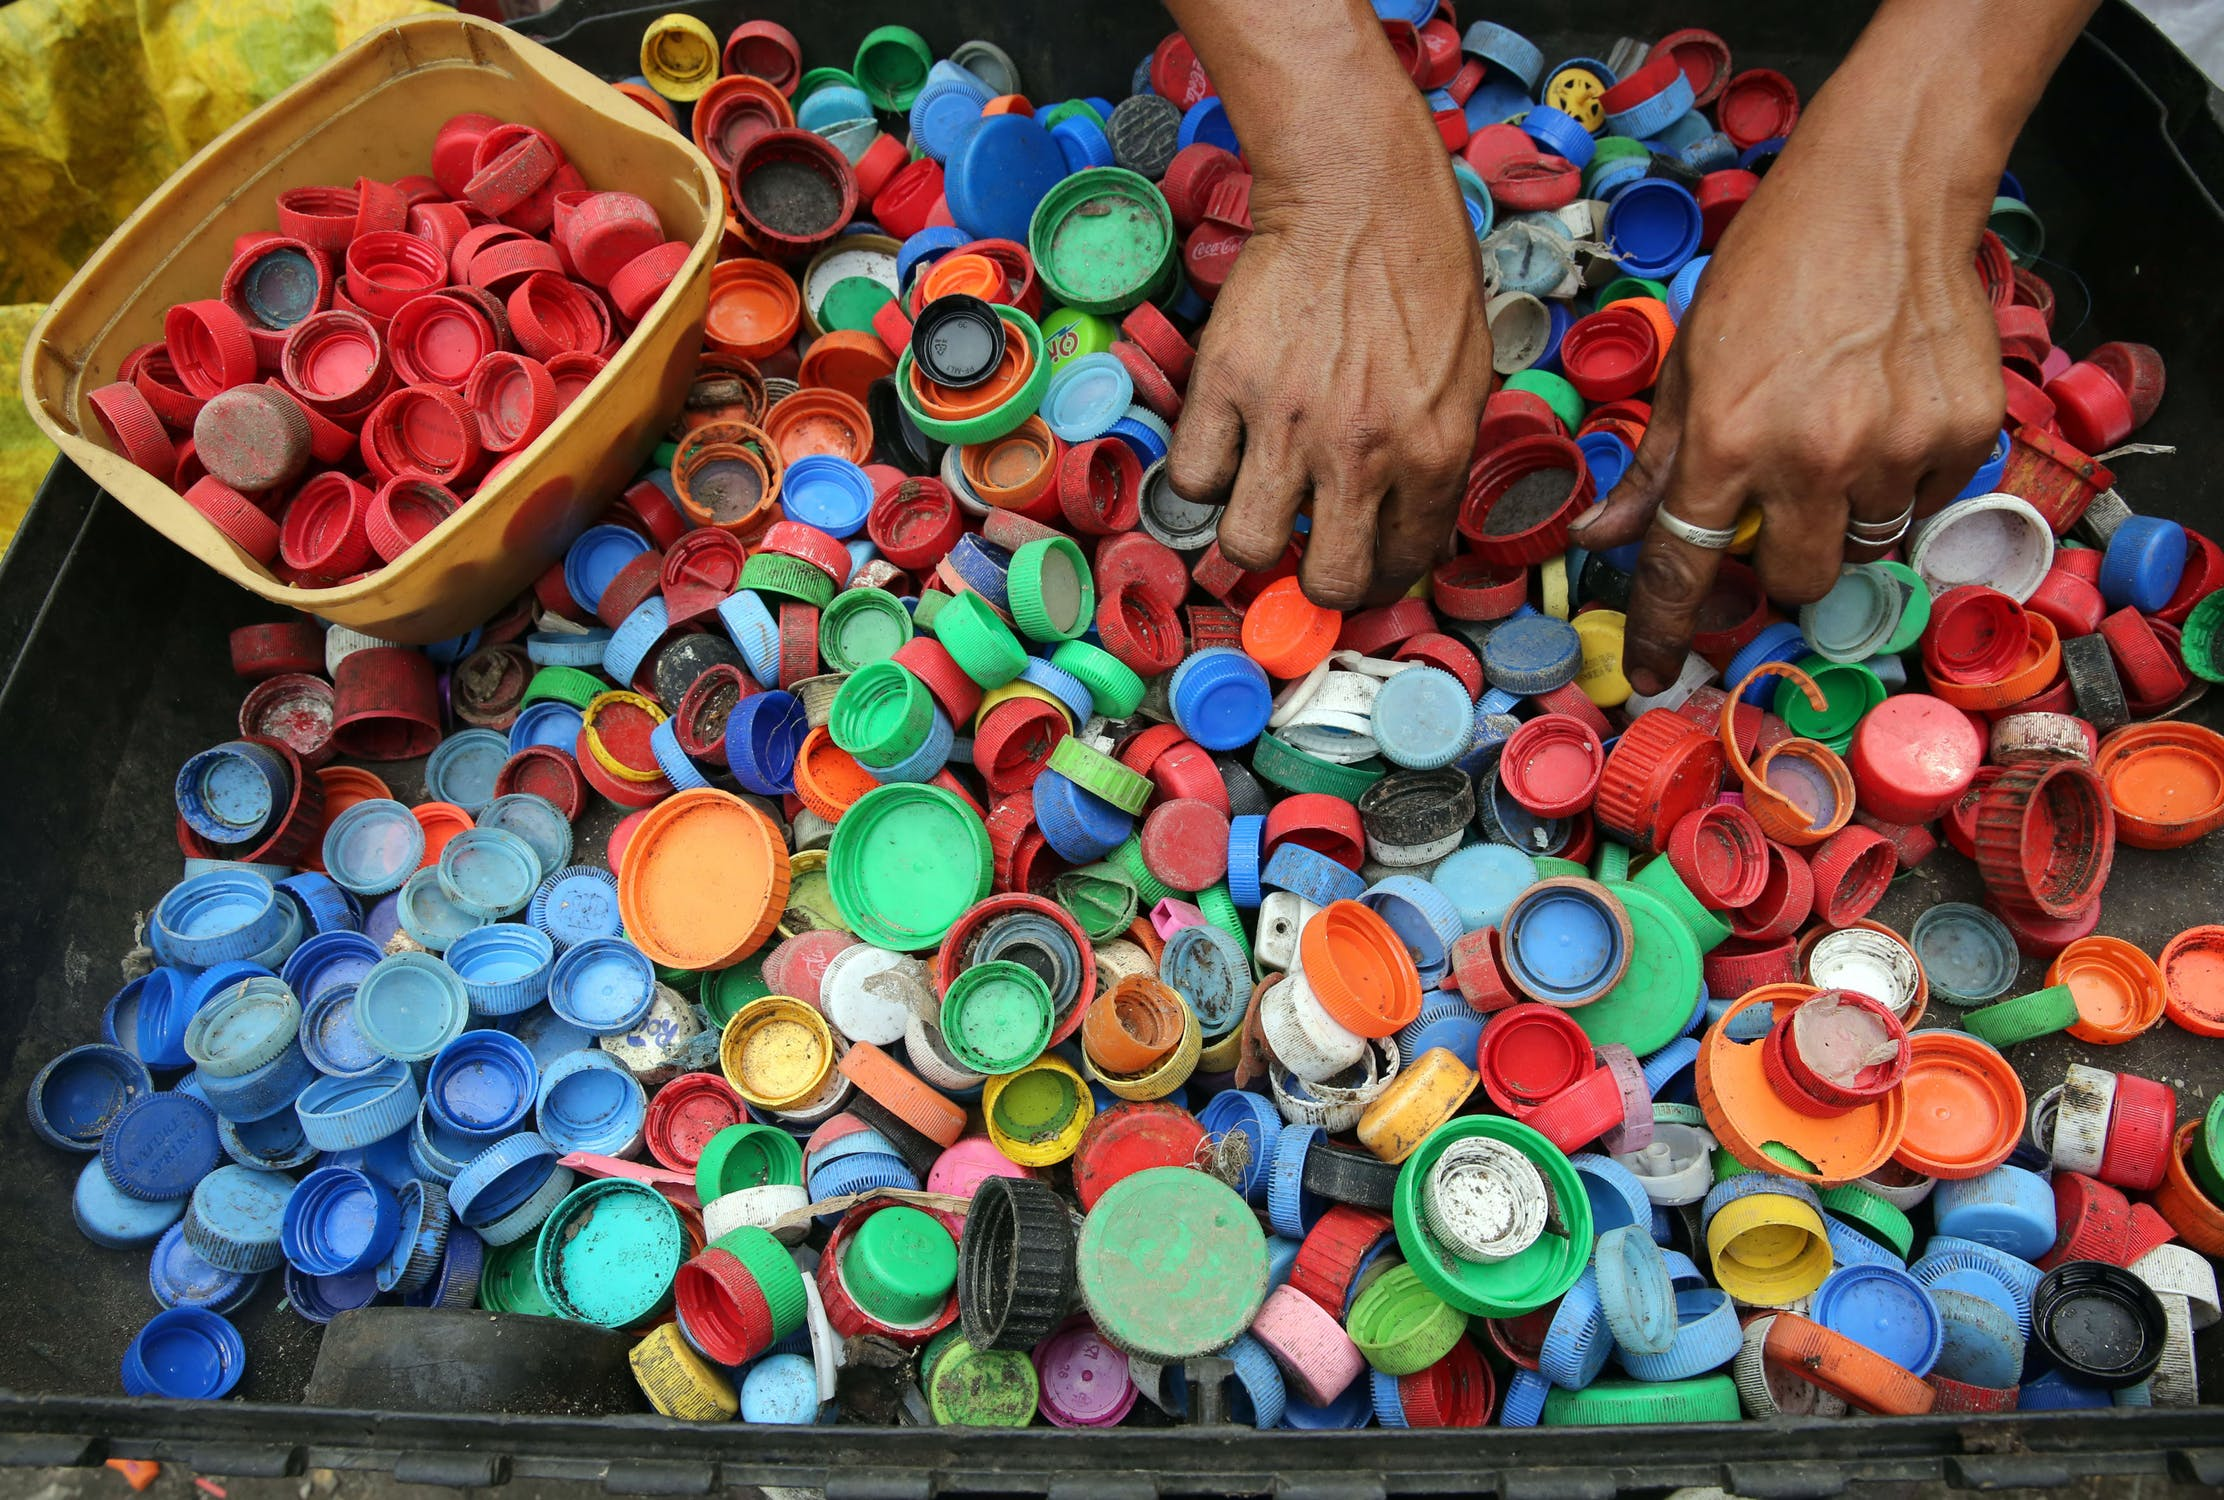 A Jordan initiative collect plastic bottles caps to support people with disabilities